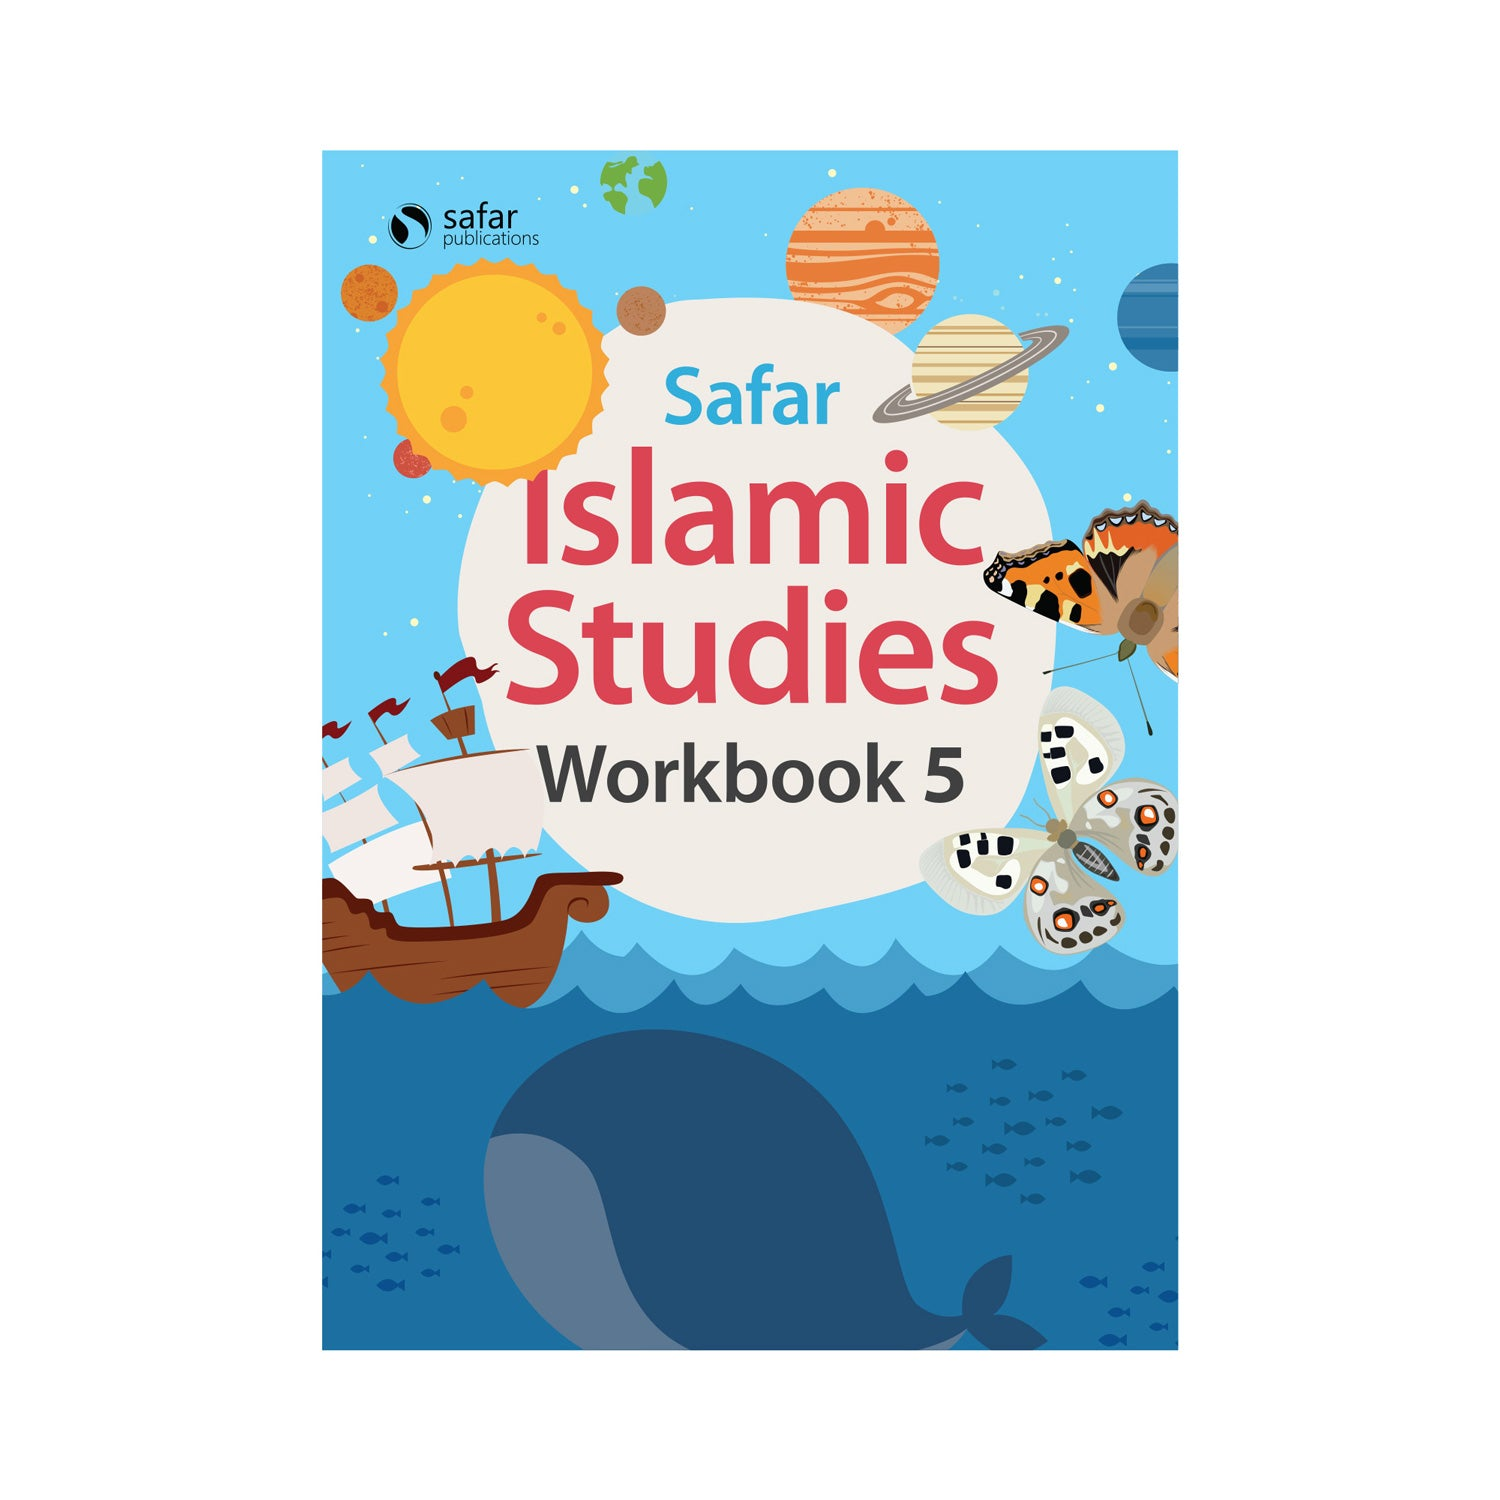 Islamic Studies: Workbook 5 – Learn about Islam Series by Safar